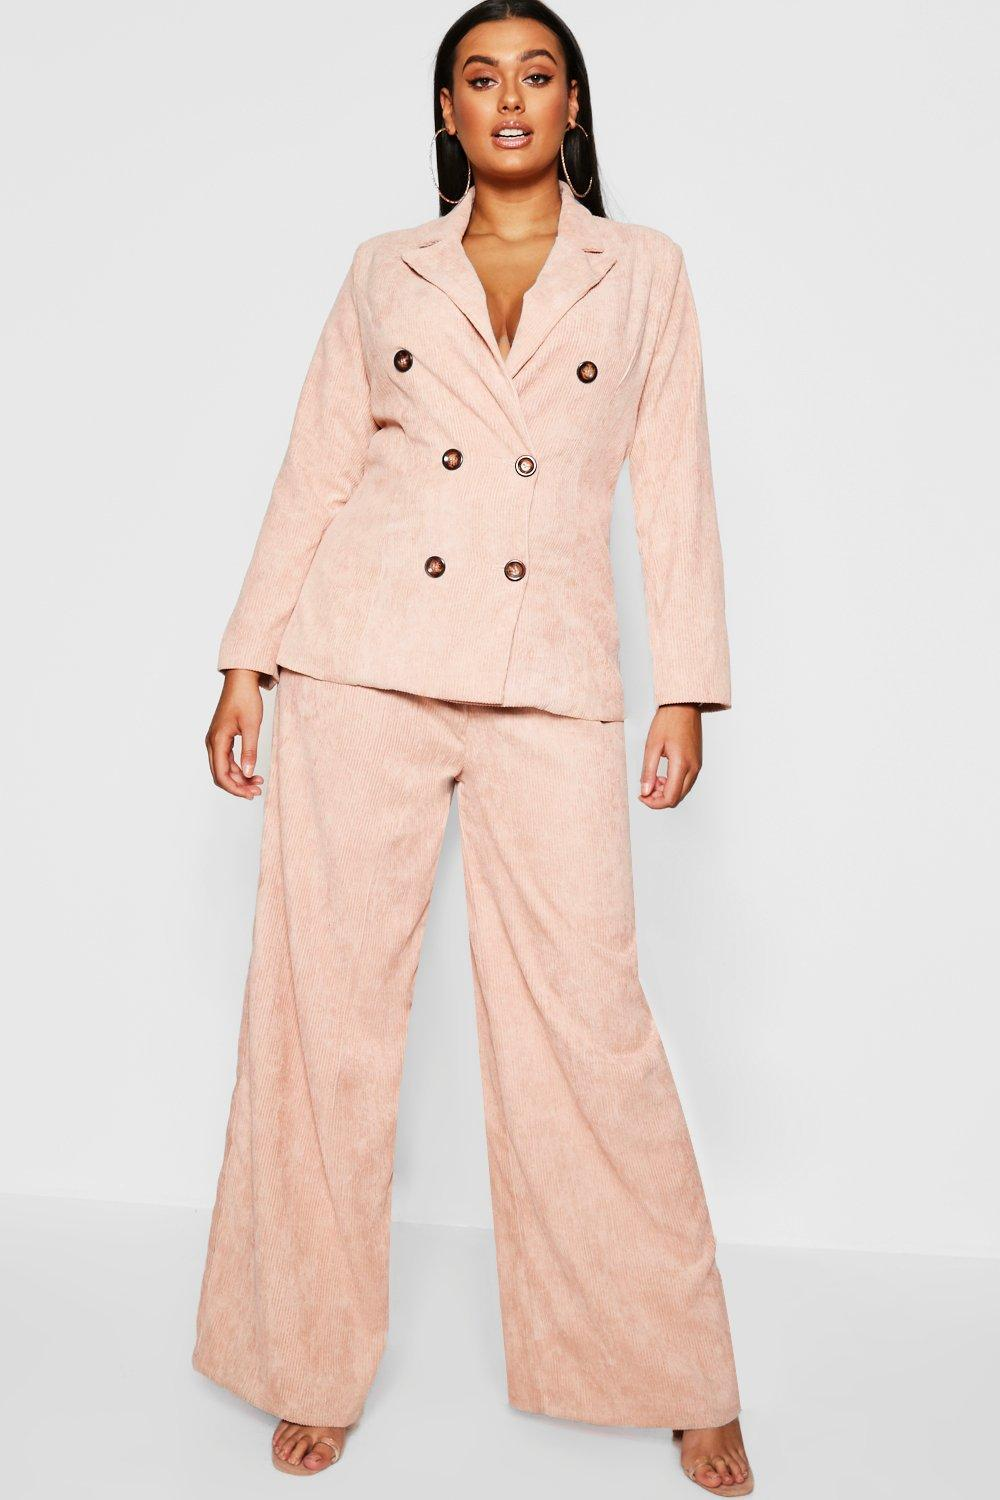 79fa080ea99 Lyst - Boohoo Plus Cord Horn Button Blazer Jacket in Pink